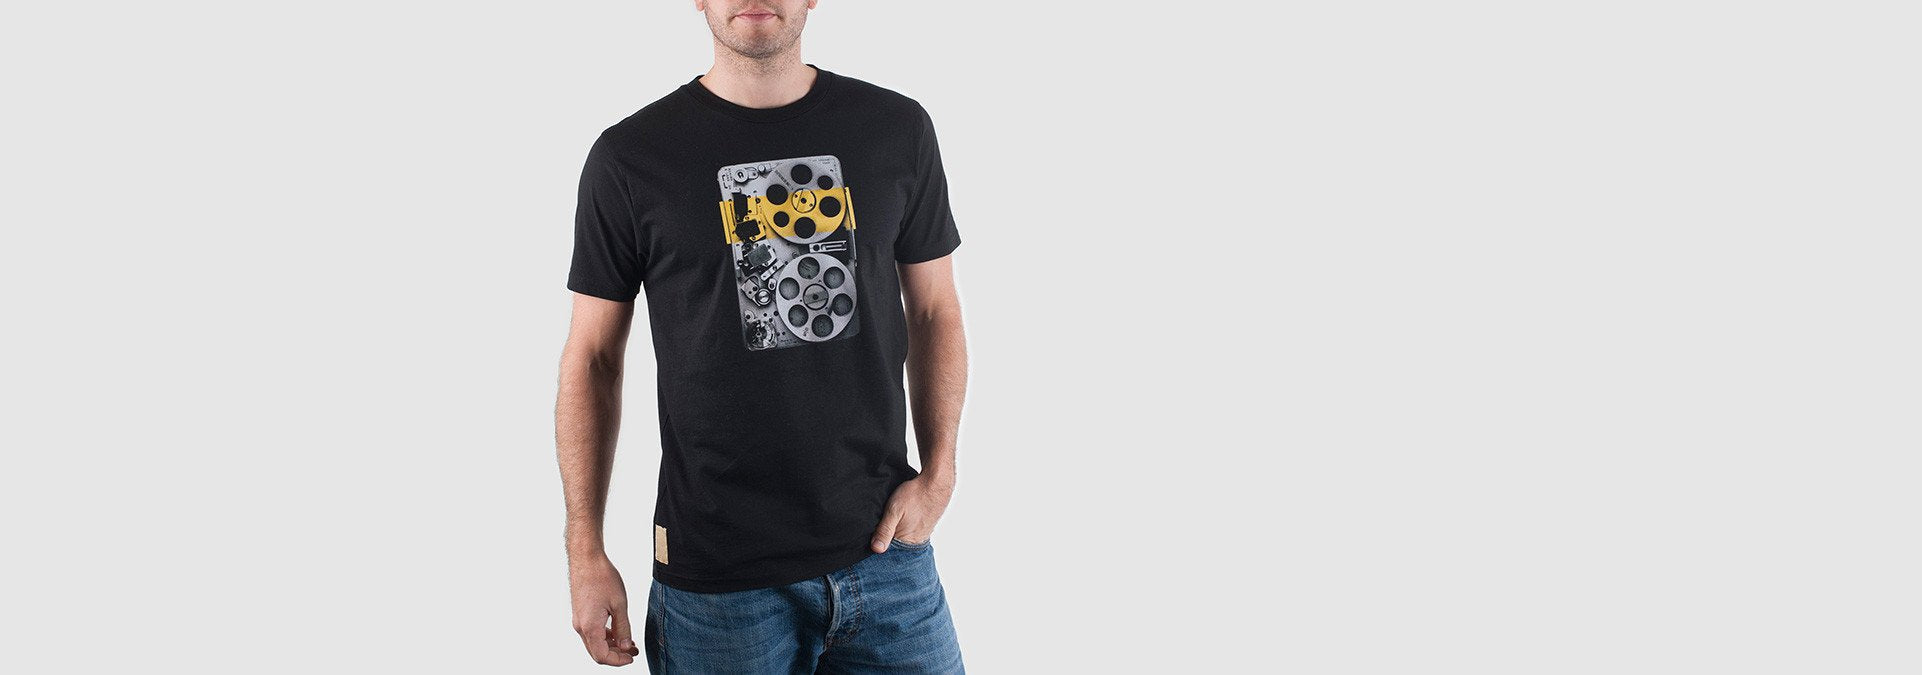 Loop Organic Cotton T-Shirt Black